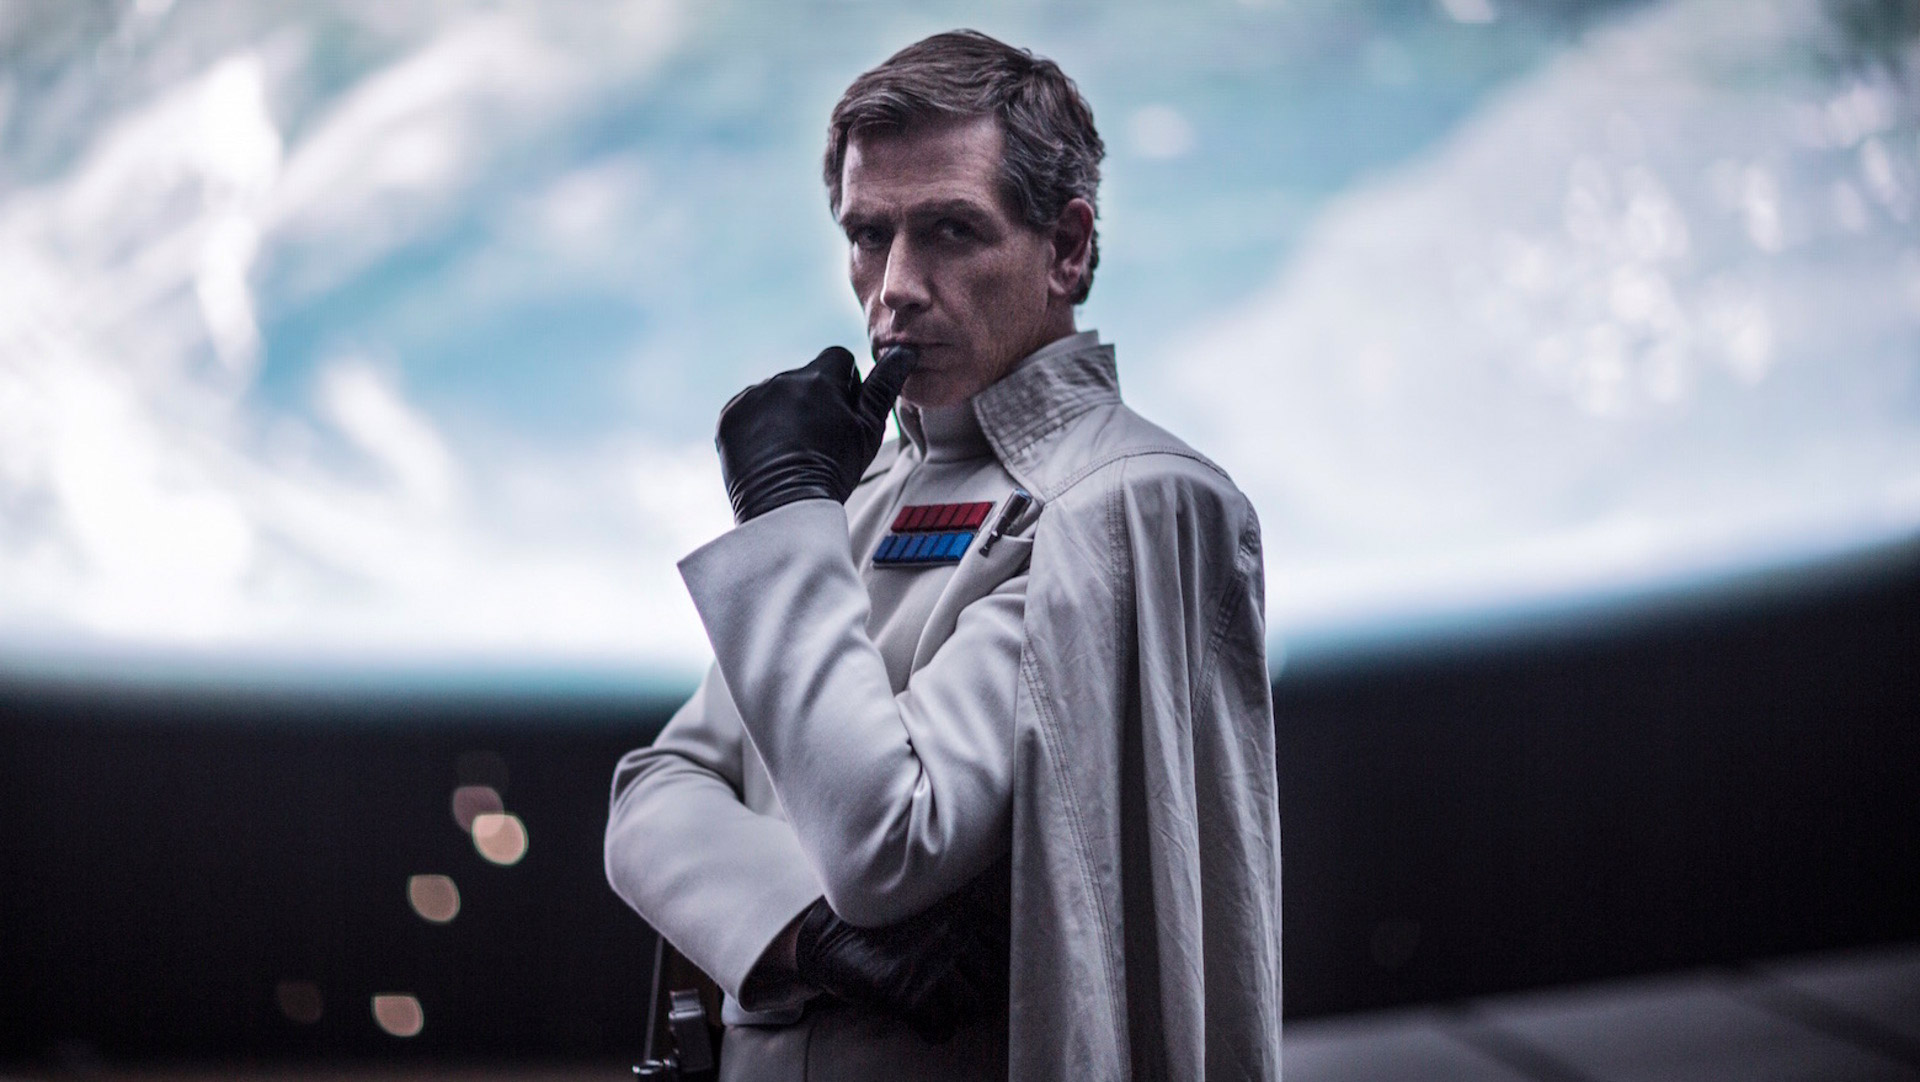 Rogue One team talks about the tricks they used to make the film authentically Star Wars